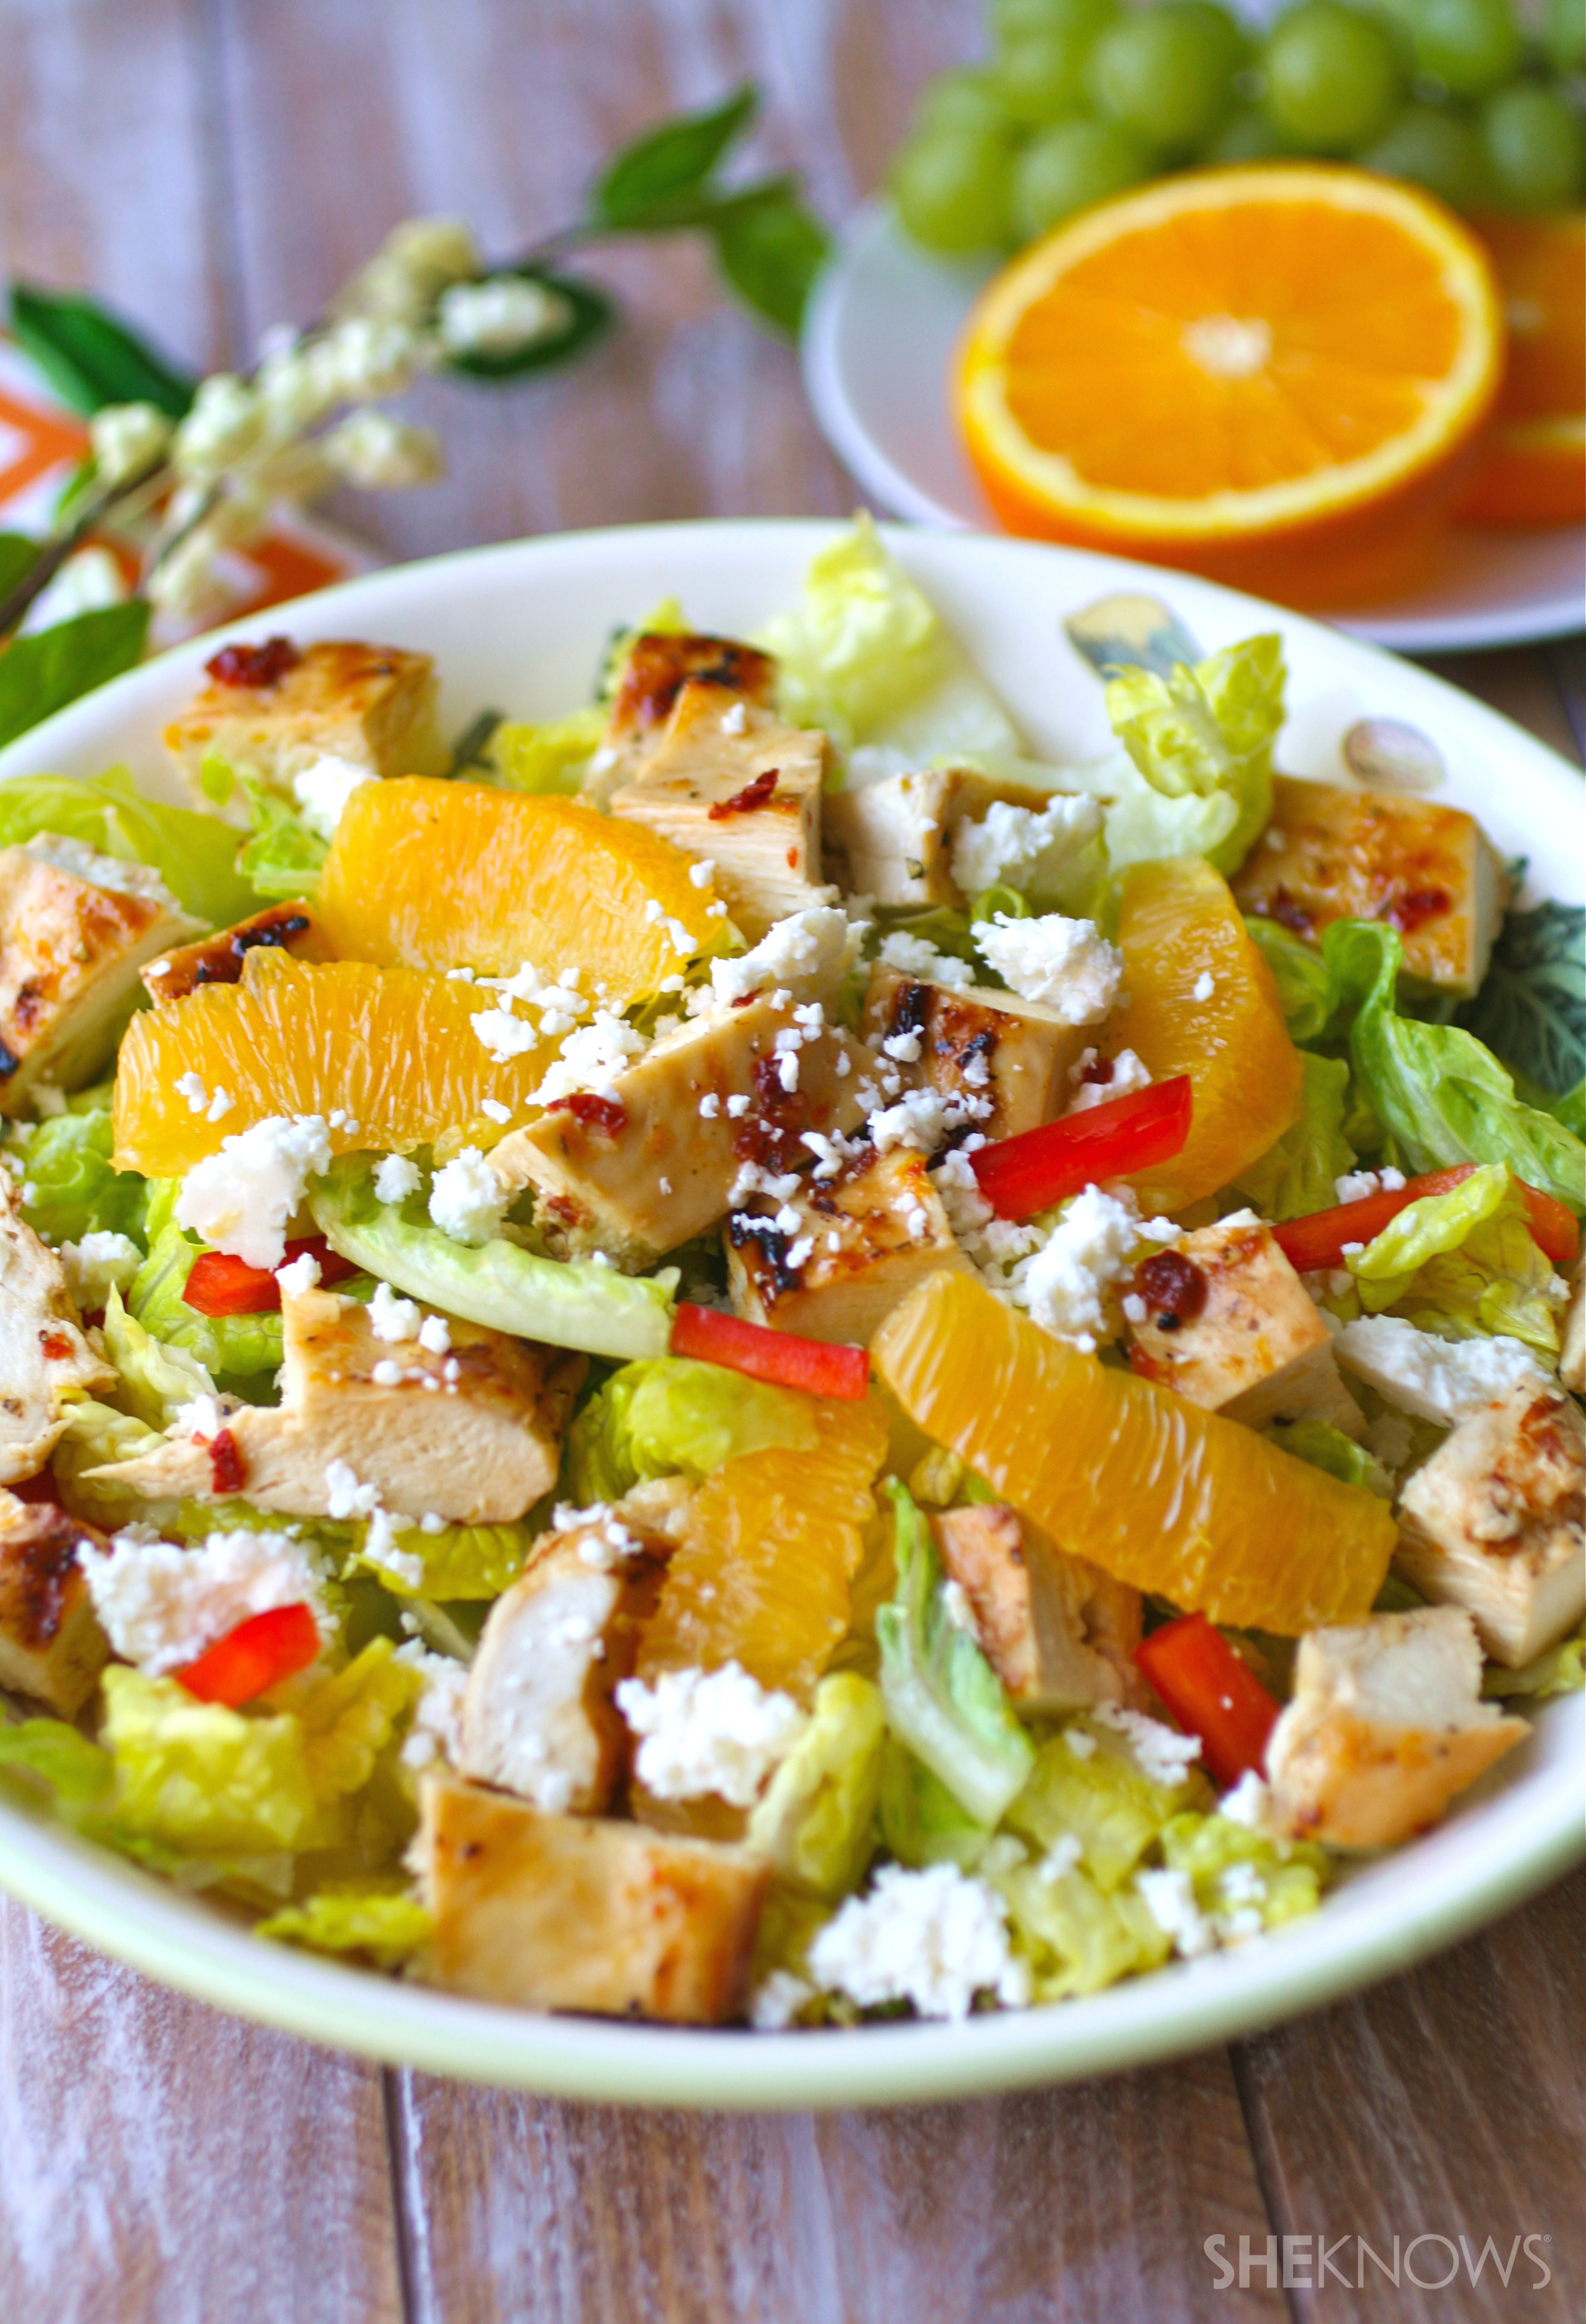 Grilled chipotle-orange chicken salad